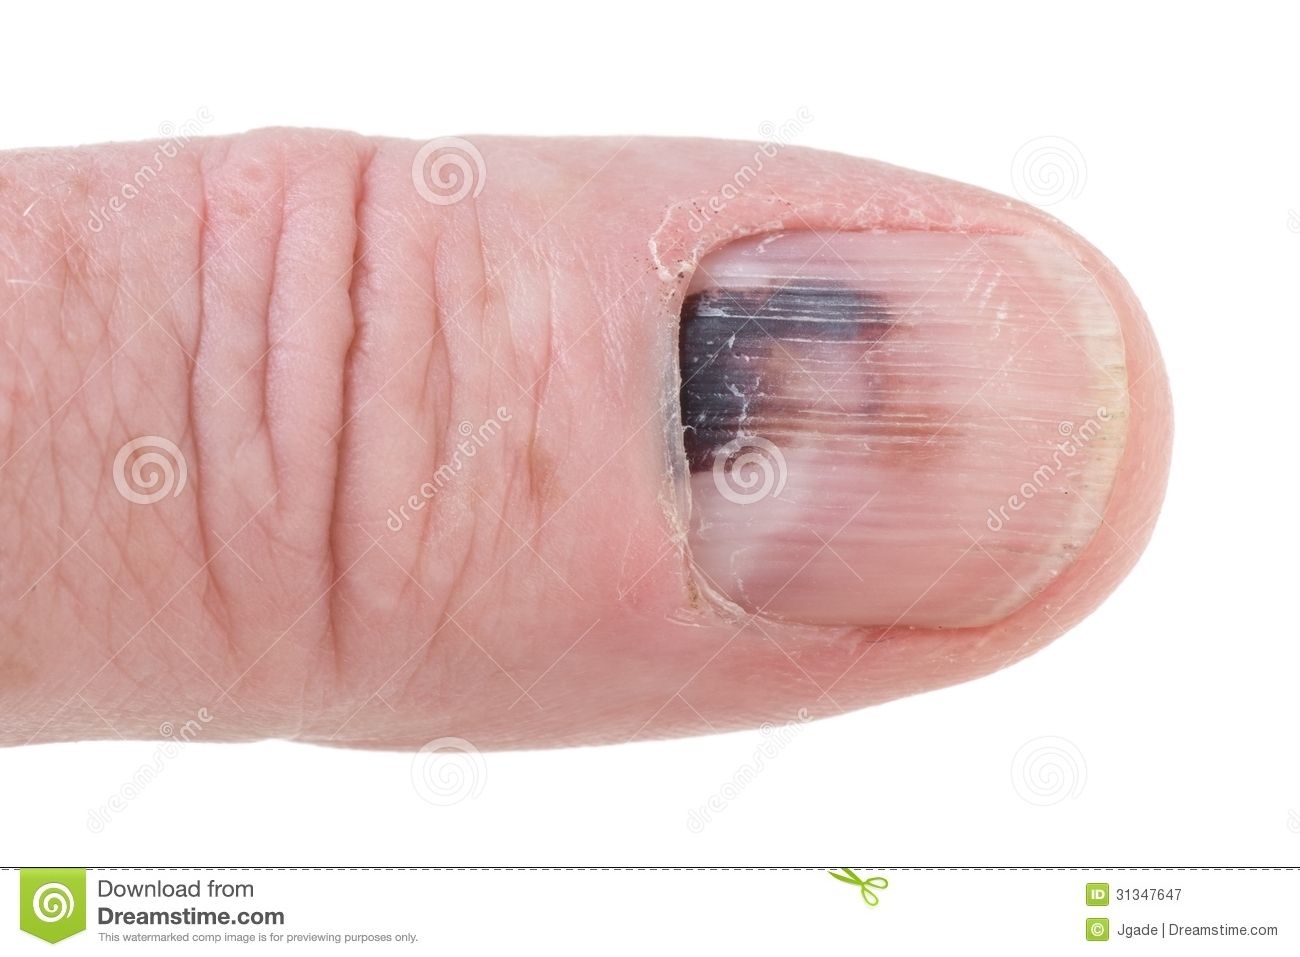 how to tell if finger broken or bruised